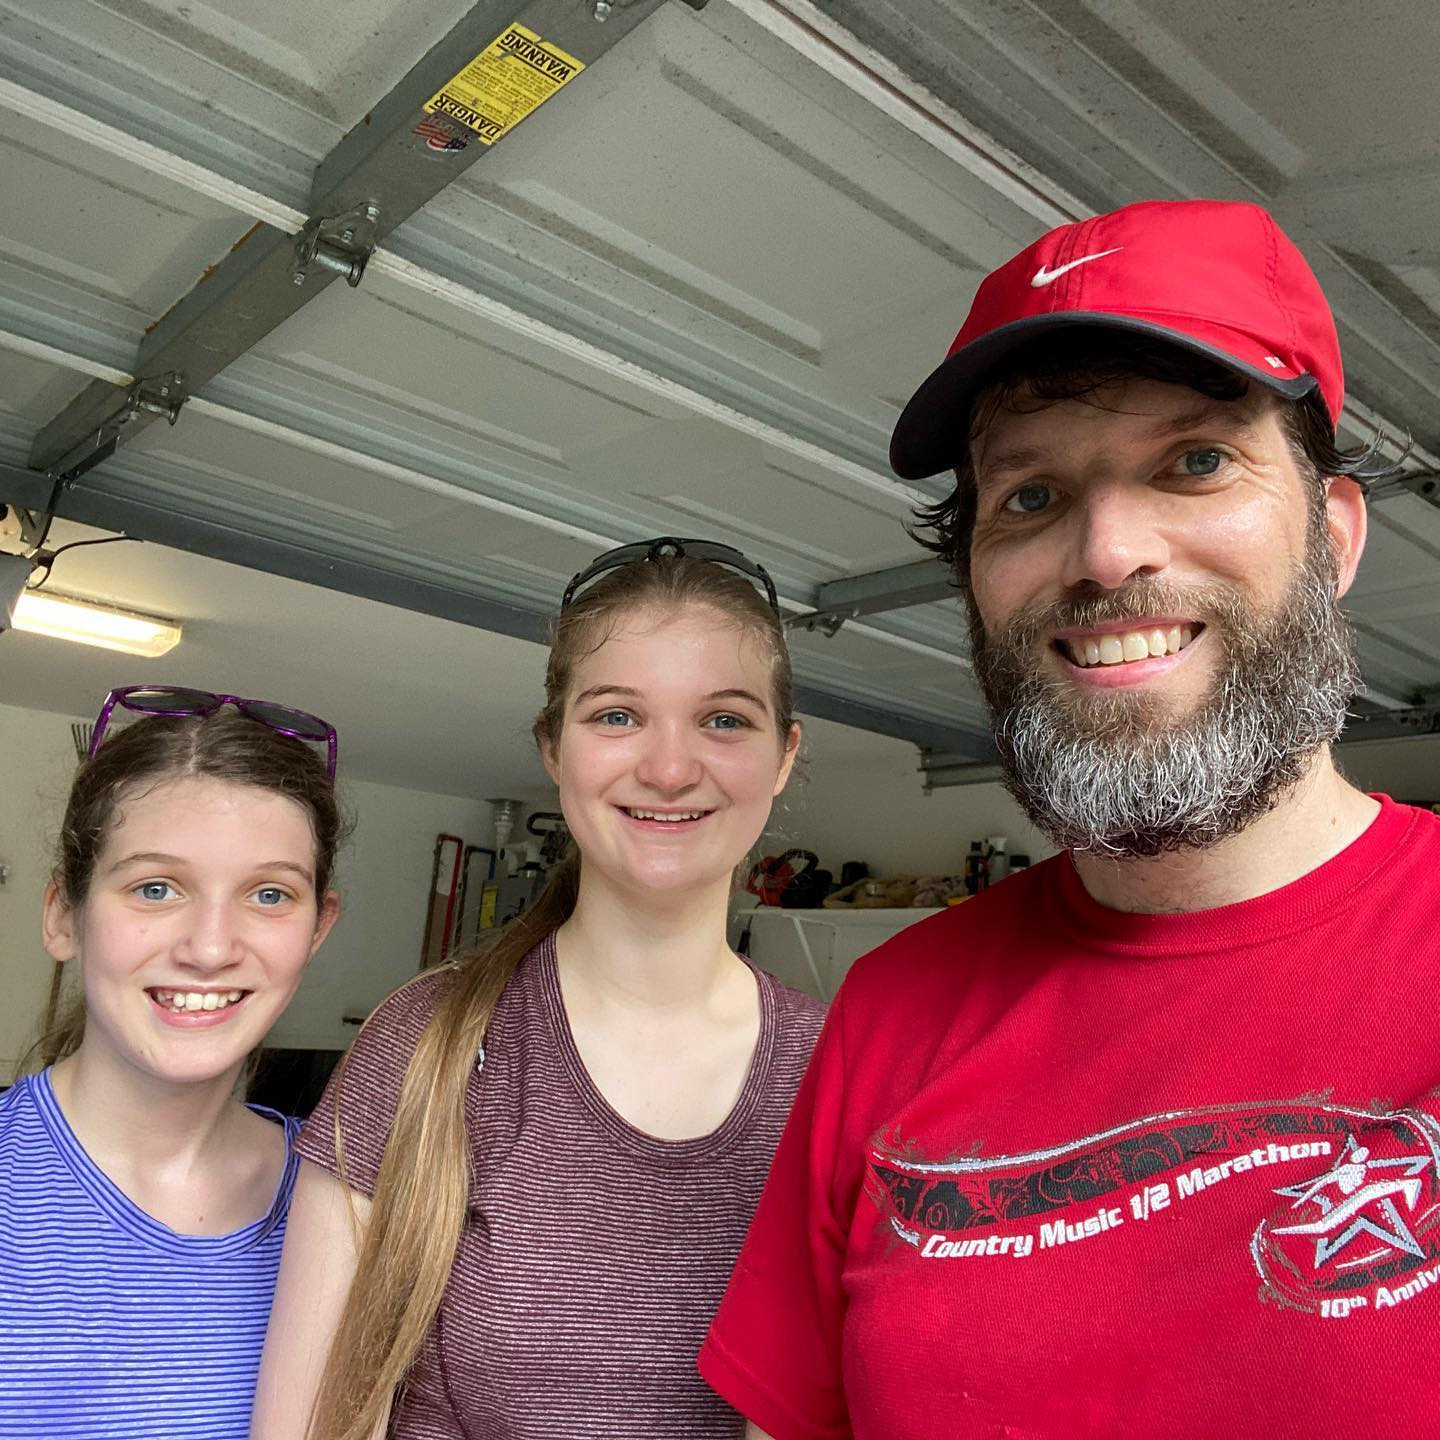 The girls keep on pushing me to work hard. Today we did 1.25 miles of hill repeats followed by a session of P90X Kenpo X. This was after I had done a brisk 3-mile run....I'm tired! #family #running #workout